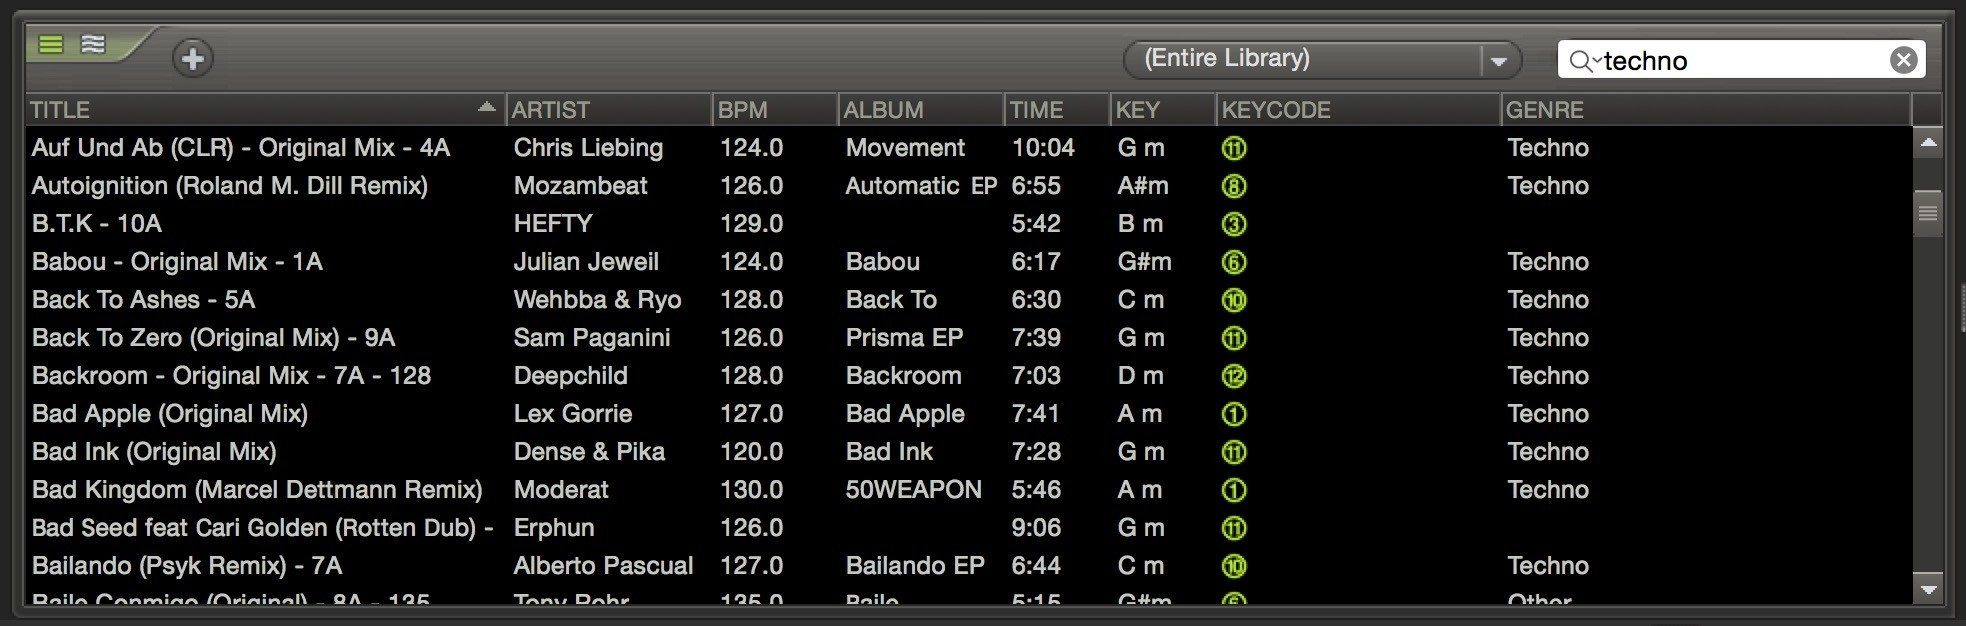 mixmeister-fusion-library-search